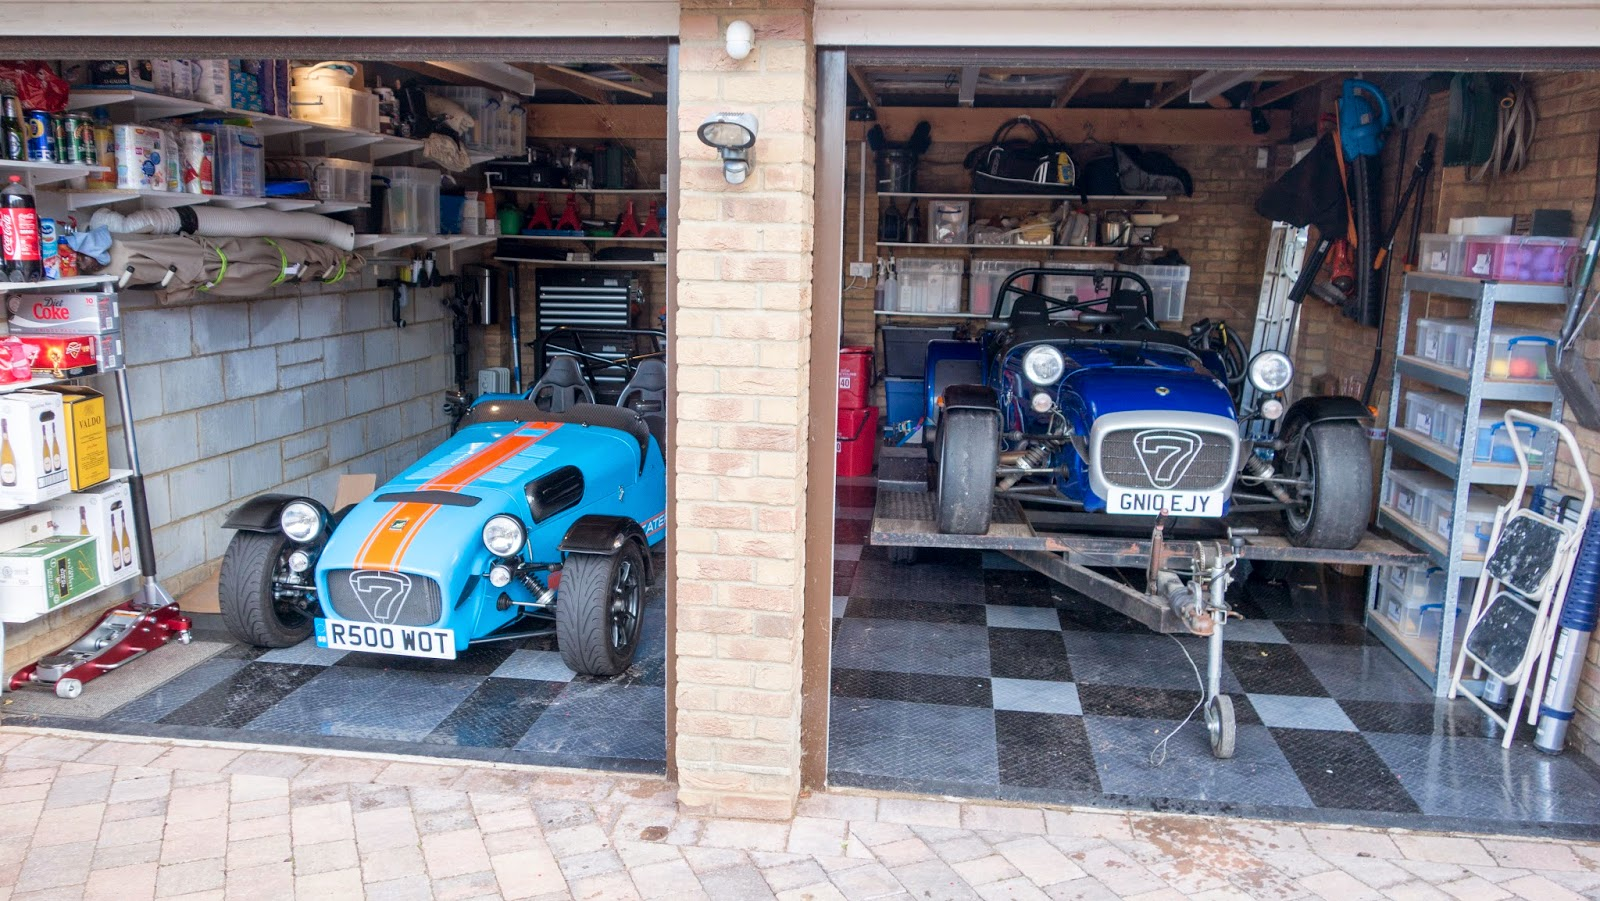 Caterham R500 and R300 Duratec's parked in my garage.